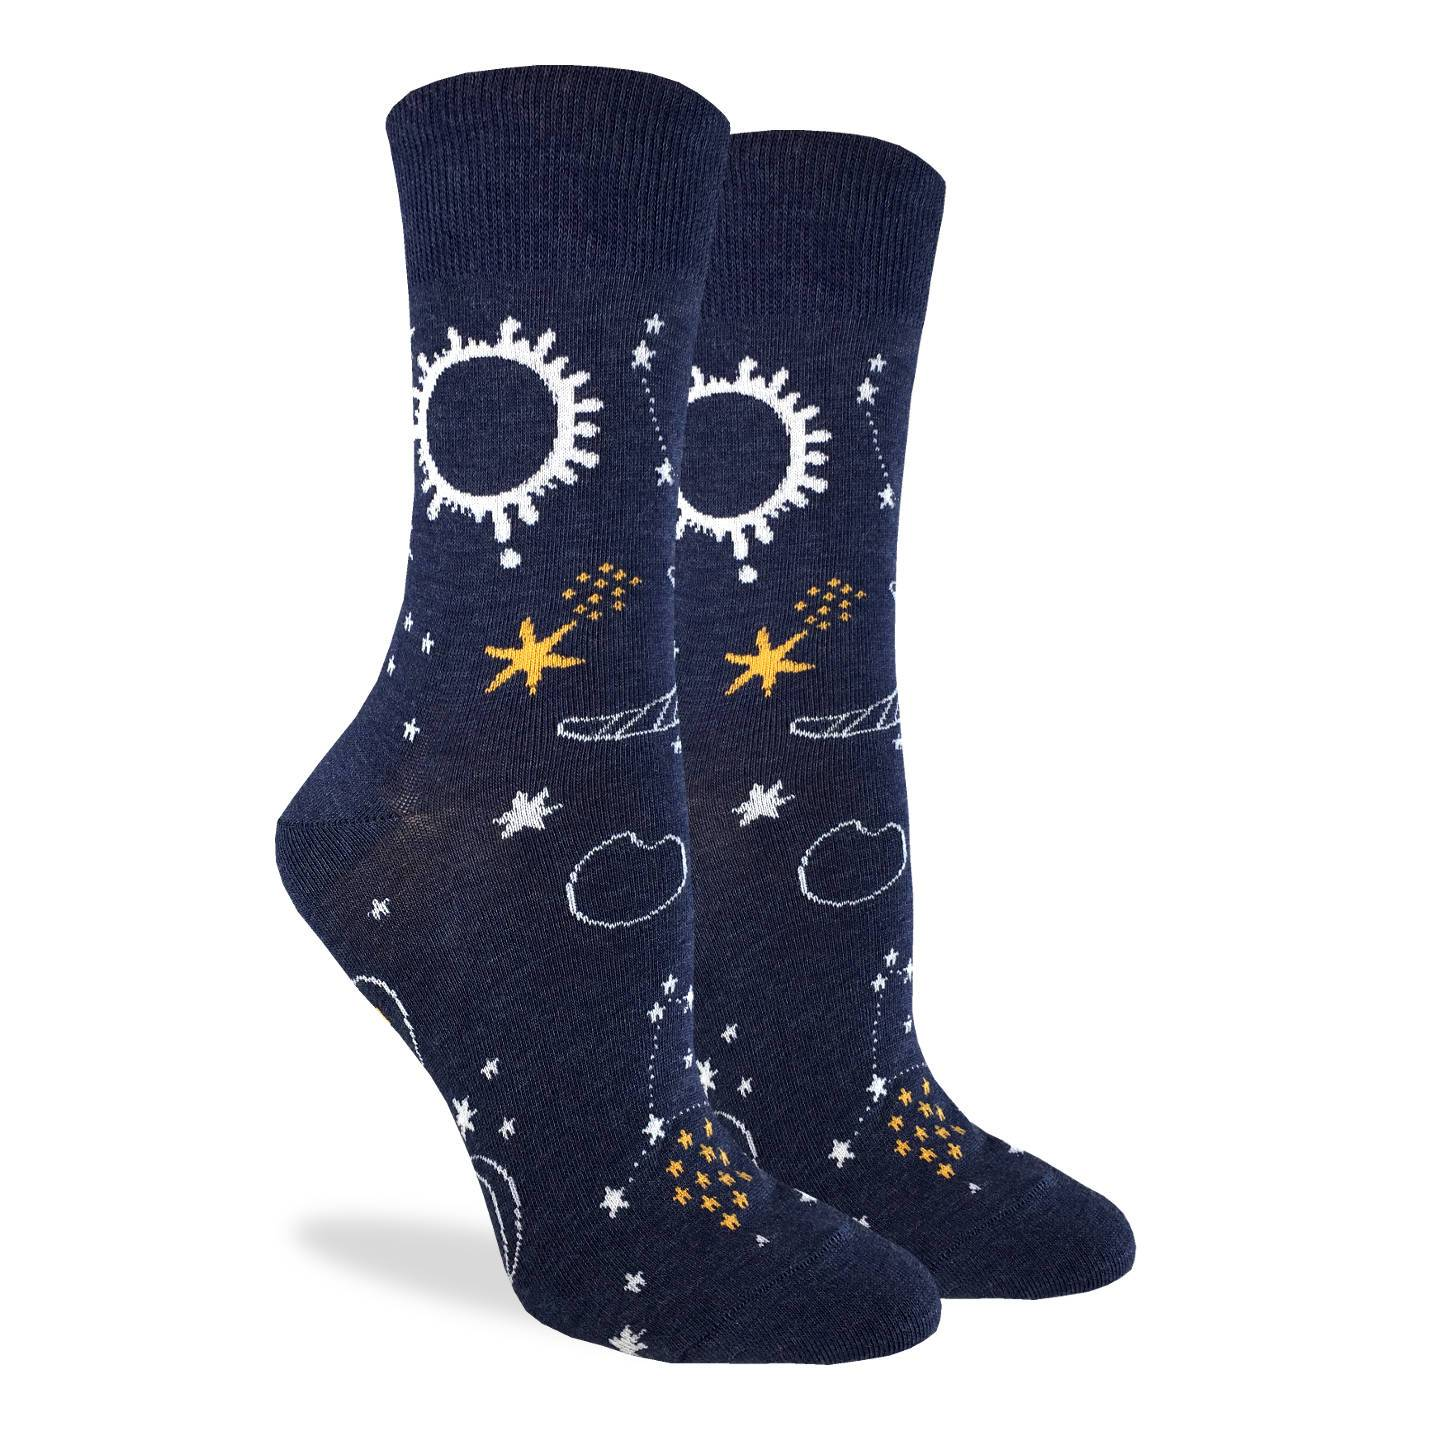 Women's Starry Night Socks - Good Luck Sock